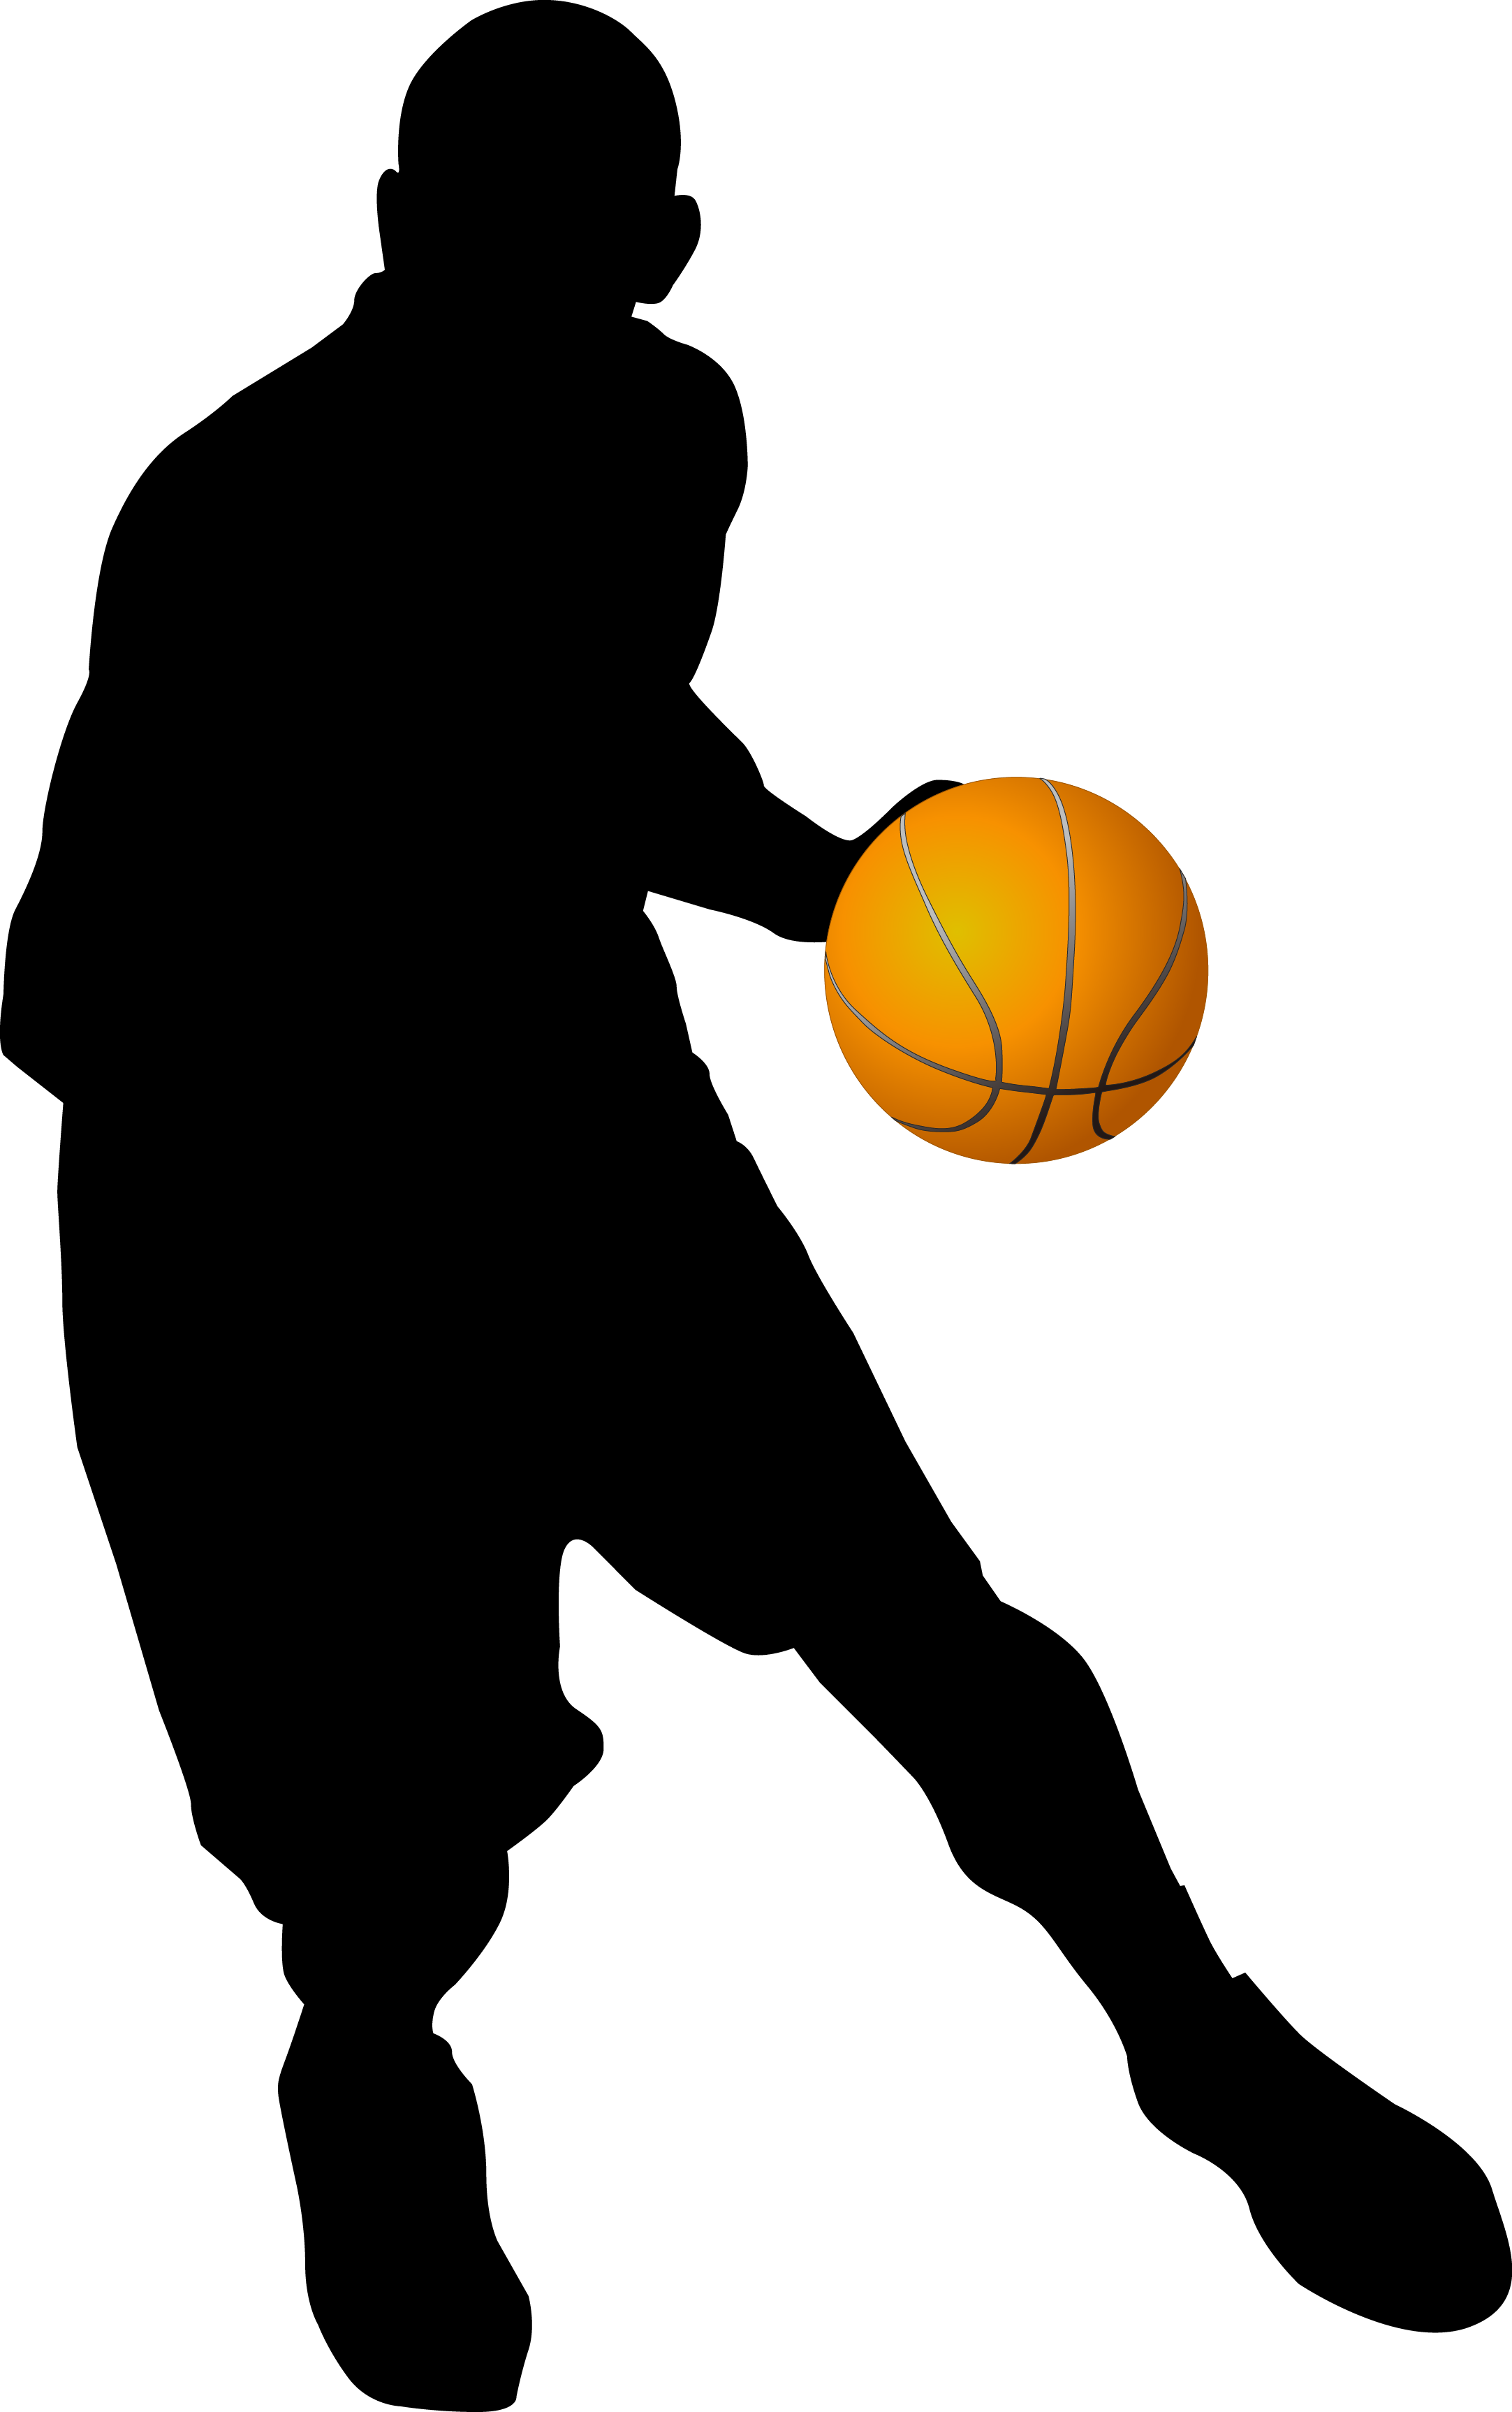 Chicago bulls player clip. Basketball and volleyball clipart